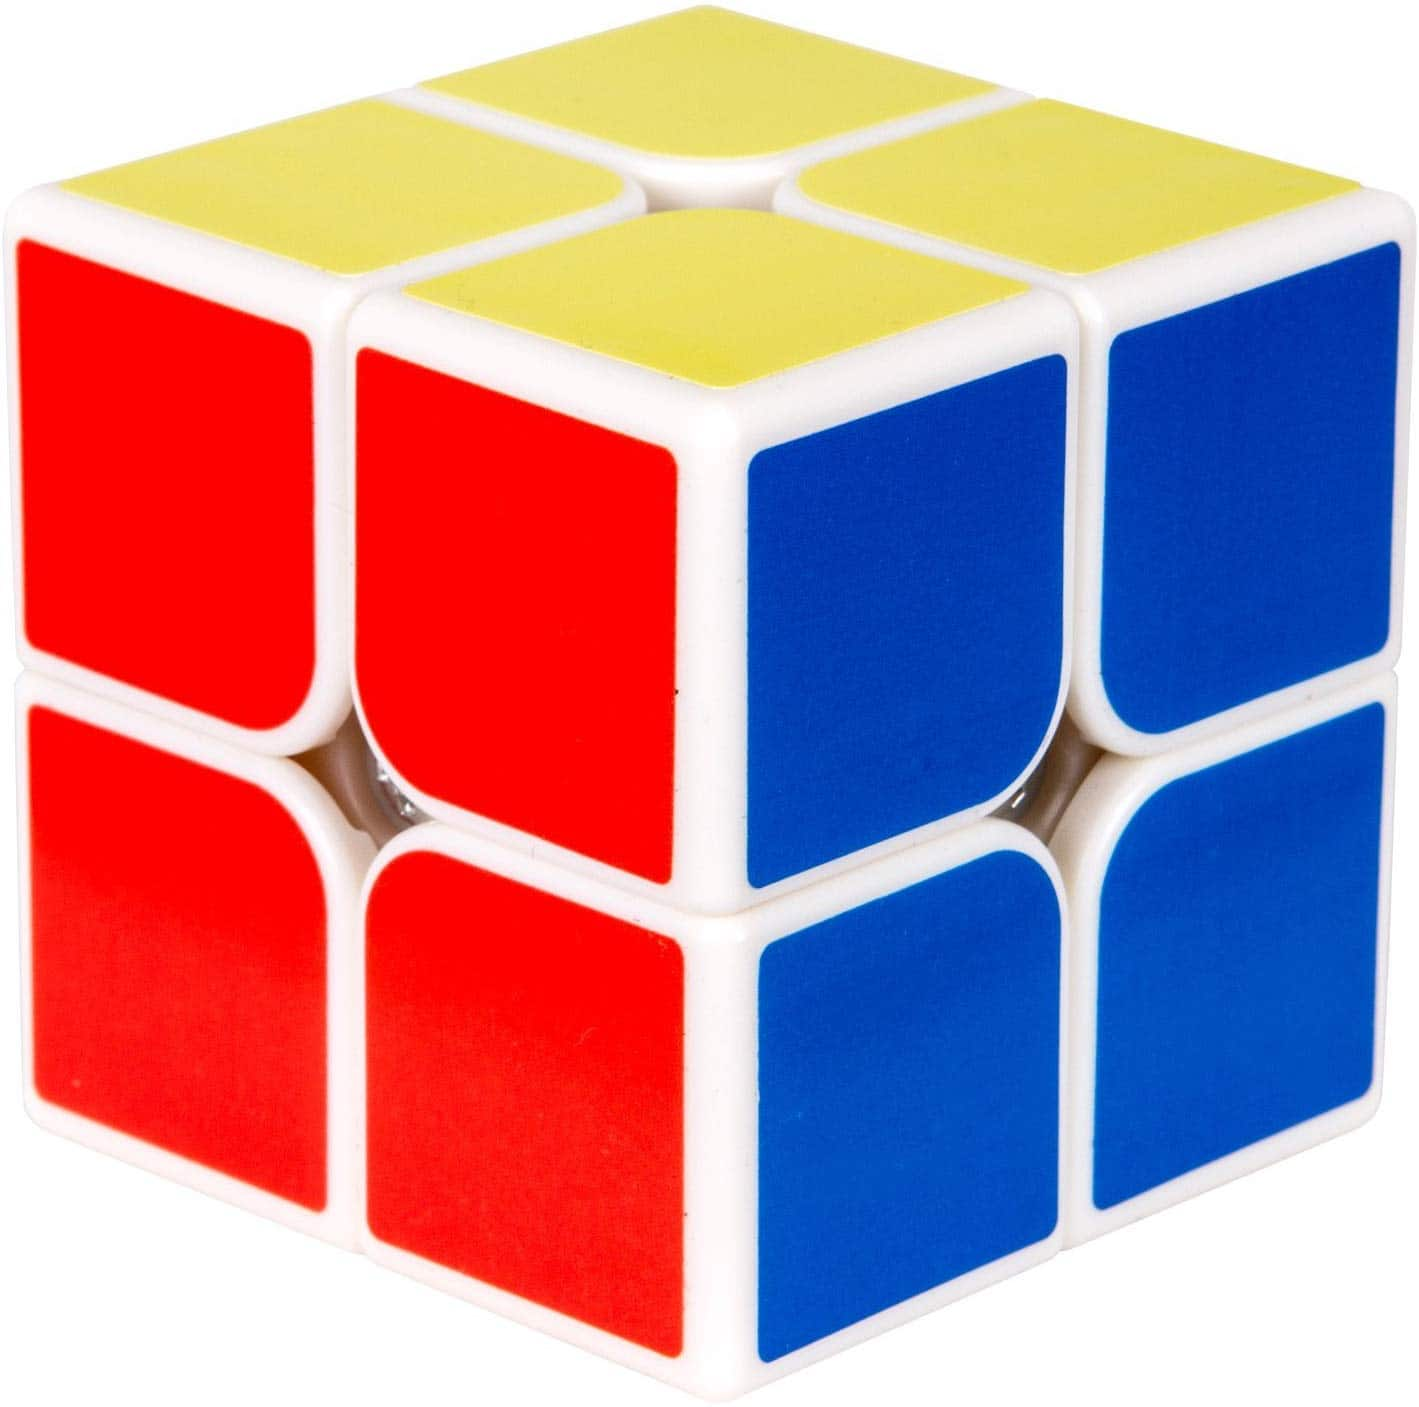 Duncan Toys Quick Cube 2 X 2, Brain Game Toy - $6.99 at Amazon  free shipping with prime